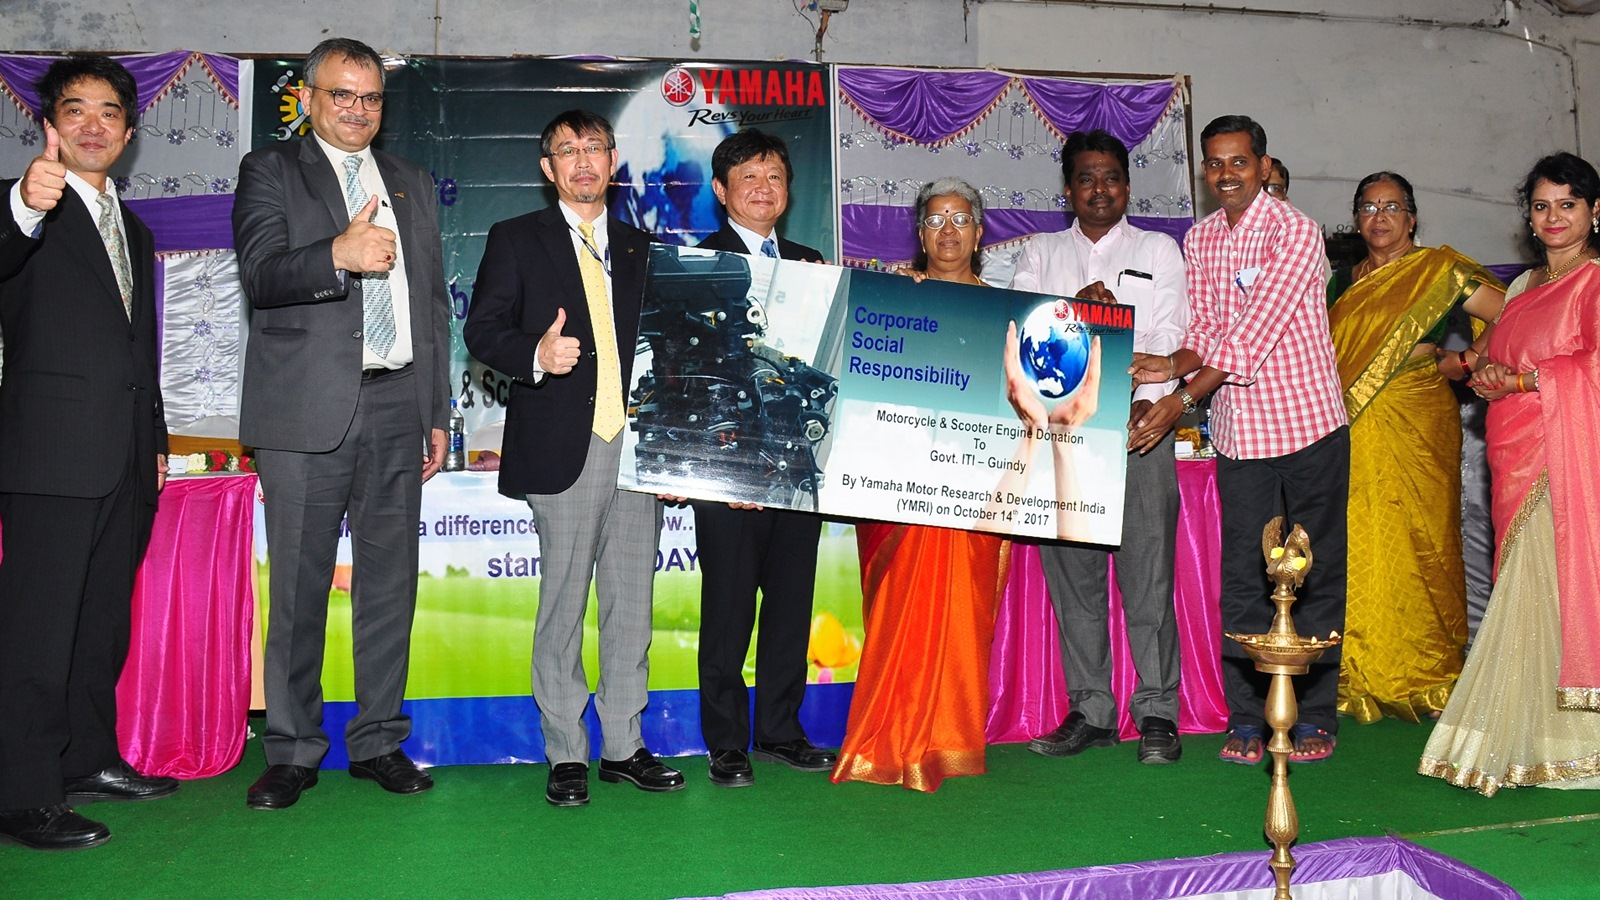 Yamaha continues cut section engine model donation to ITI colleges